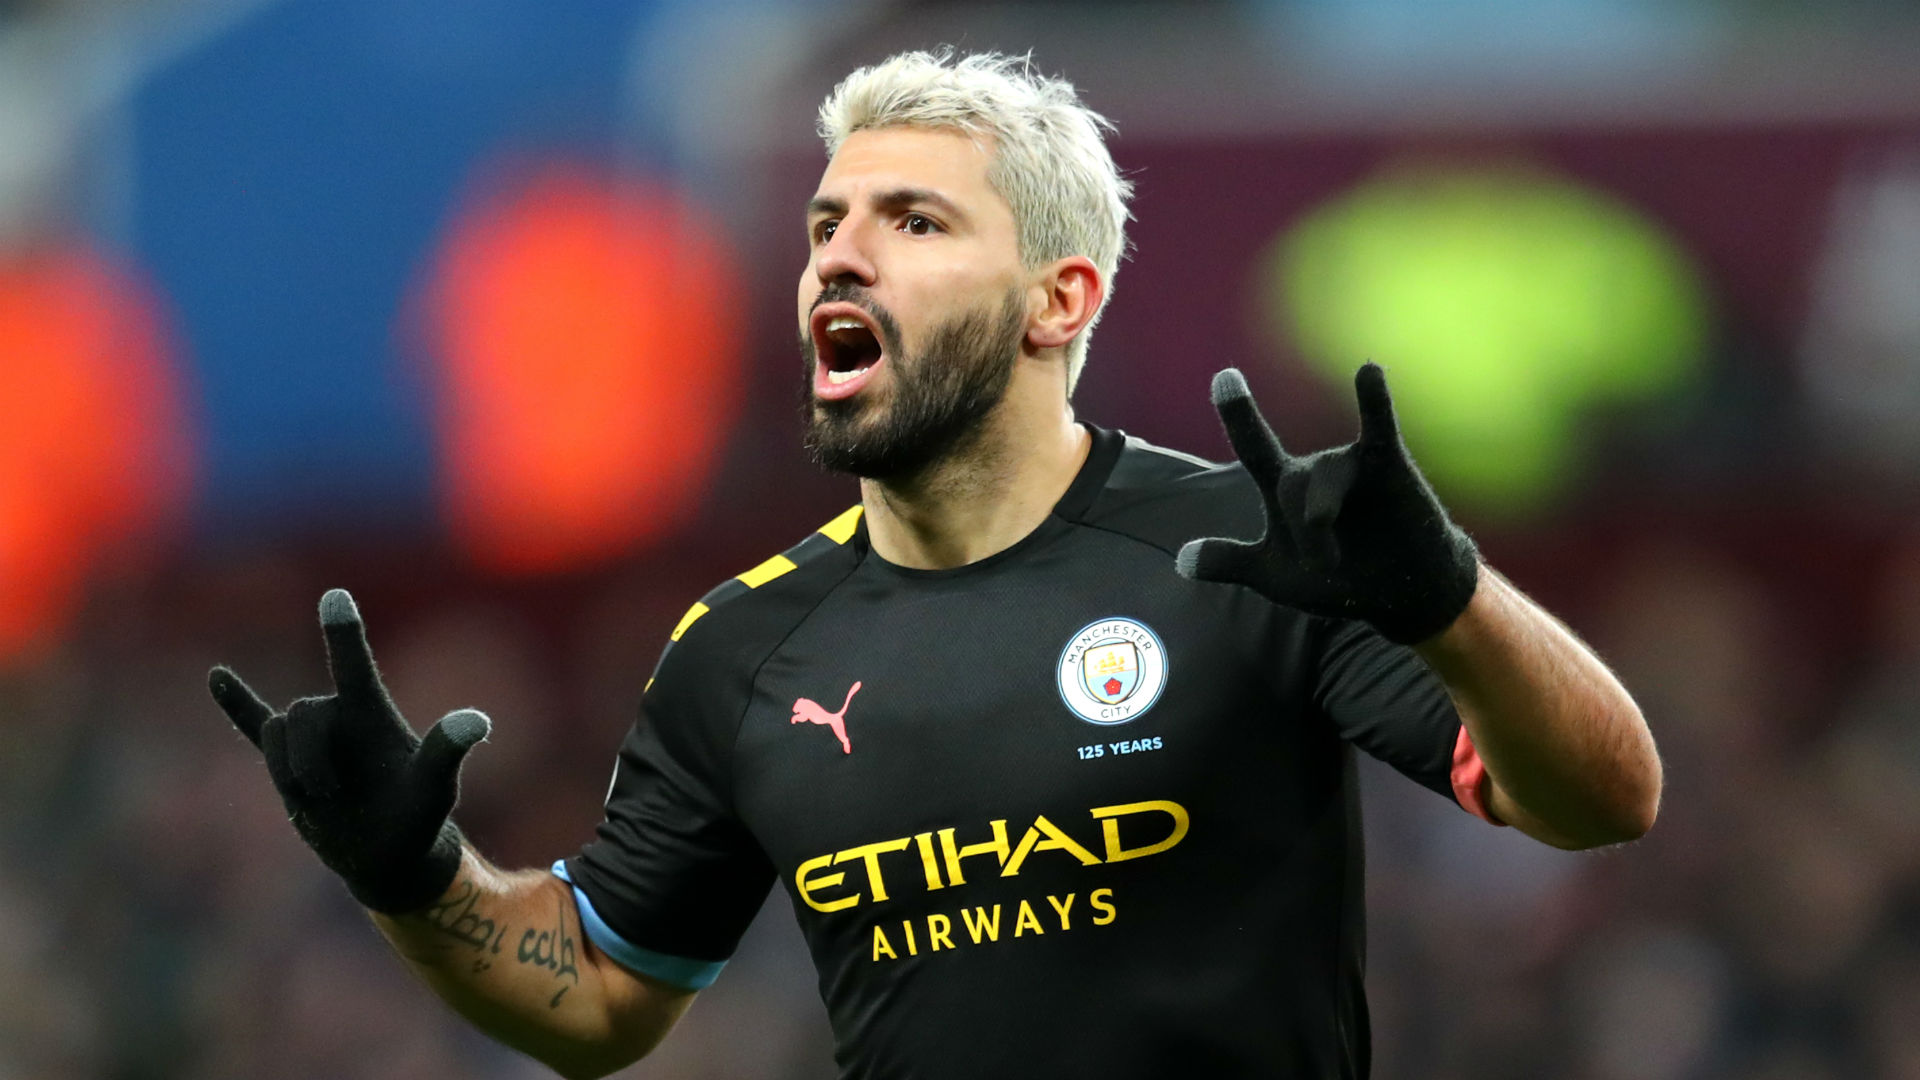 Sergio Aguero made Premier League history as Manchester City hammered Aston Villa on a nightmare debut for Danny Drinkwater.